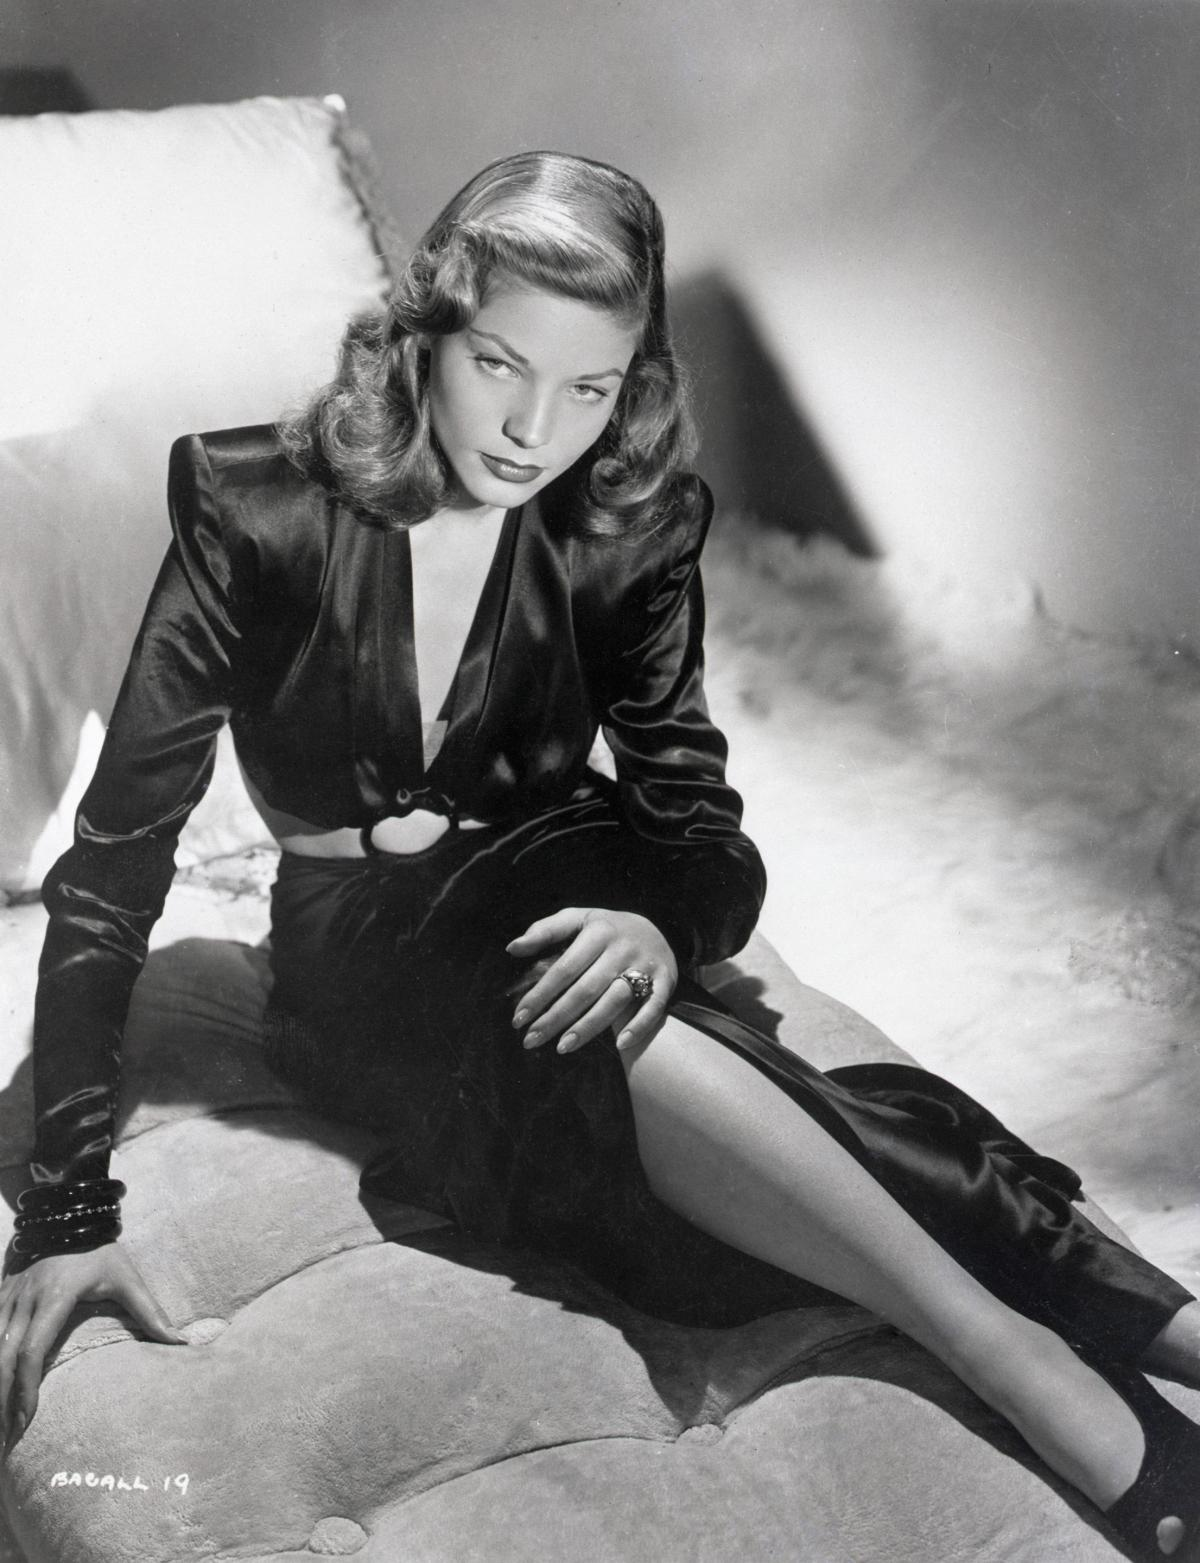 Bacall sits with her legs crossed on a cushion, wearing a long black dress with a v neckline, heels, and with her hair in curls